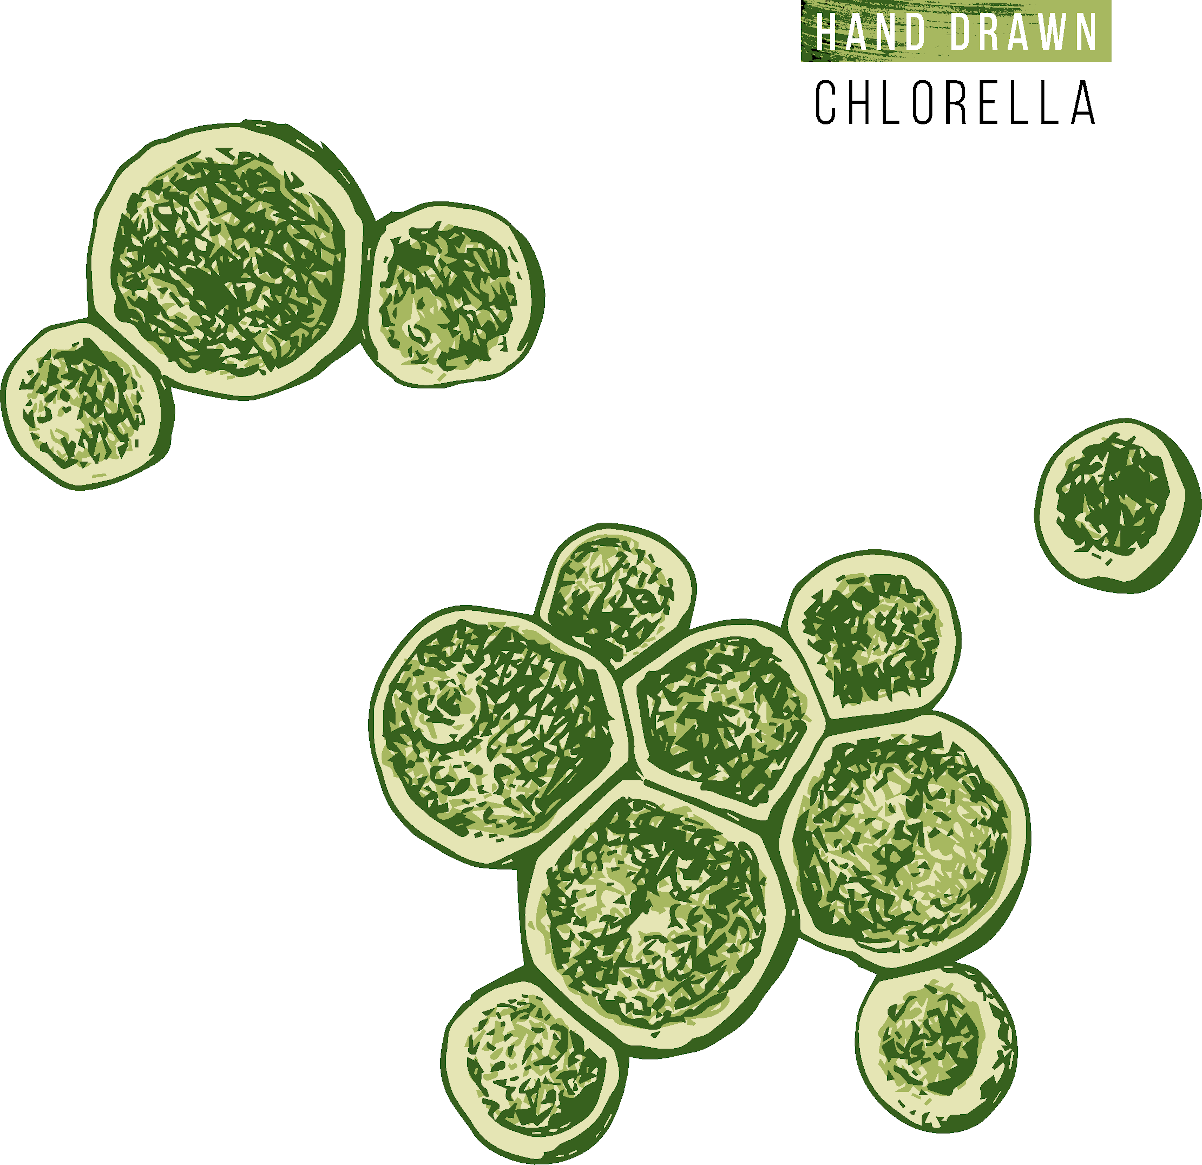 Health benefits of Chlorella food for body and blood